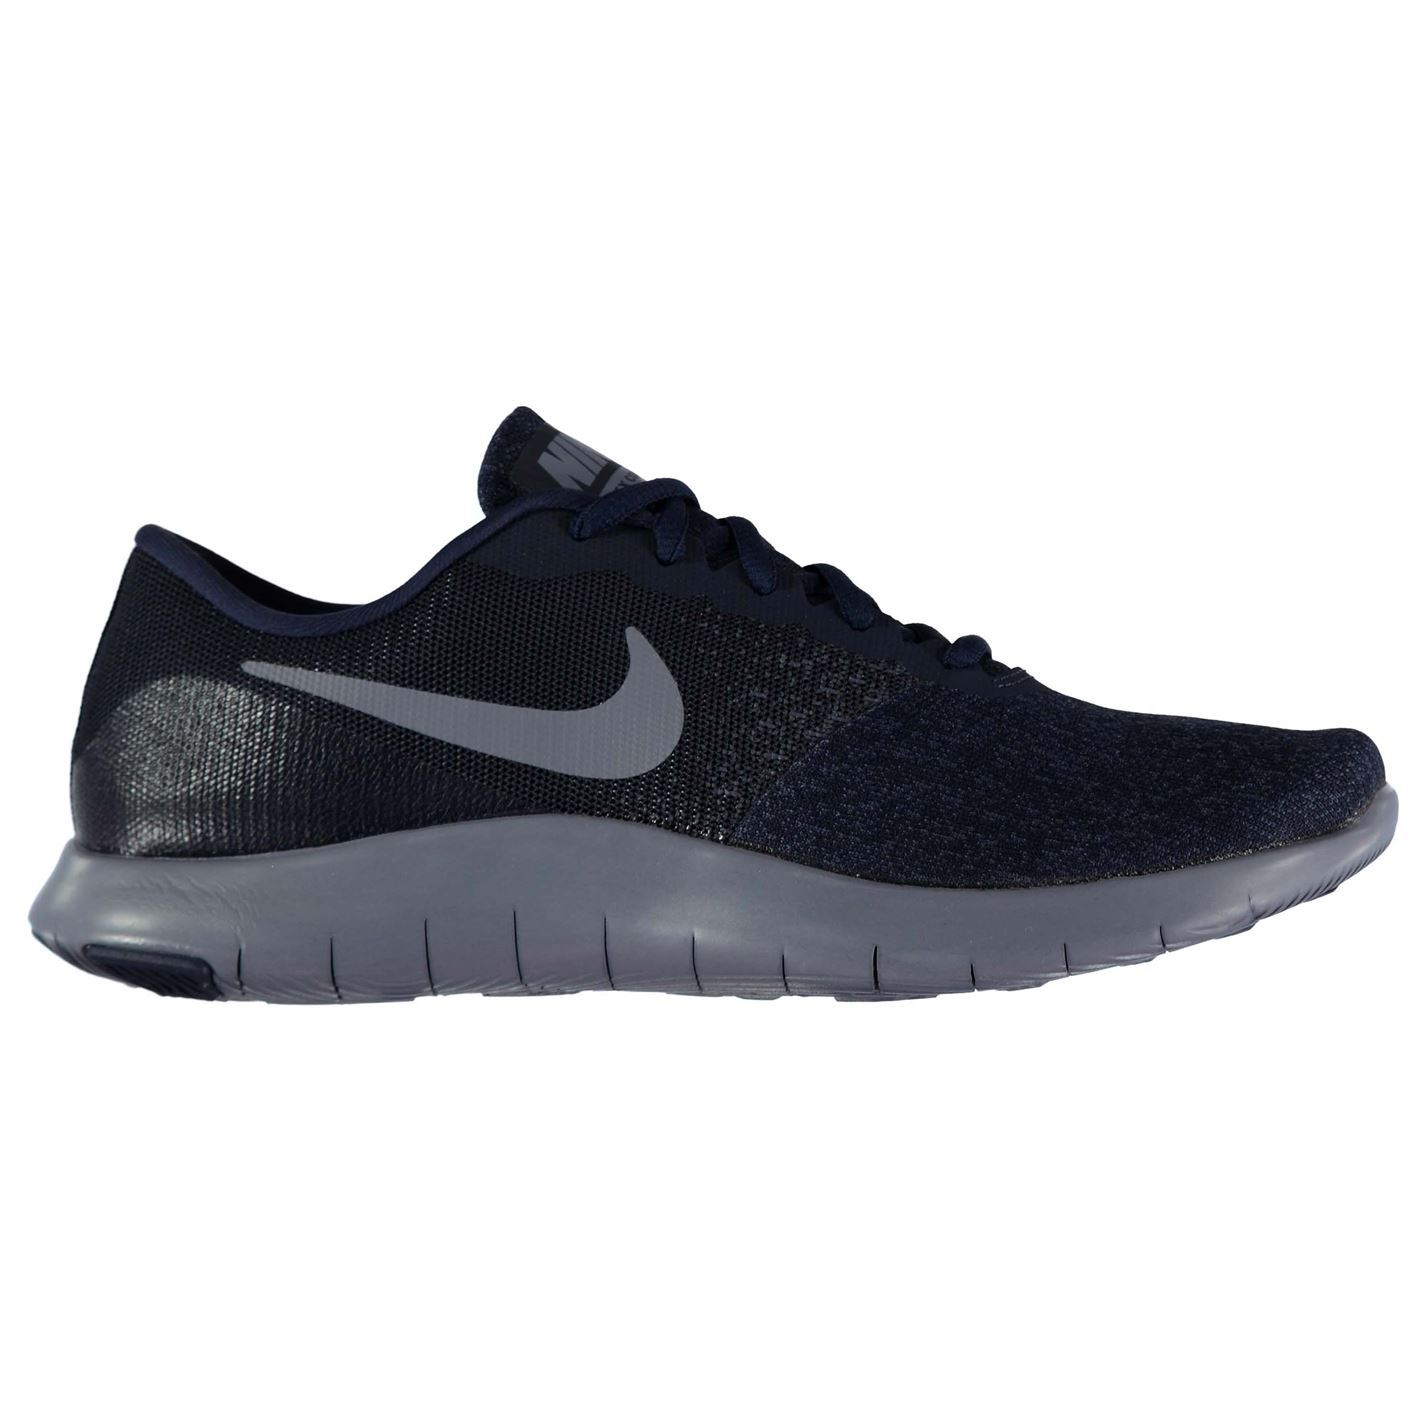 16651cefb41a0 ... Nike Flex Contact Running Shoes Mens Navy Blue Jogging Trainers  Sneakers ...